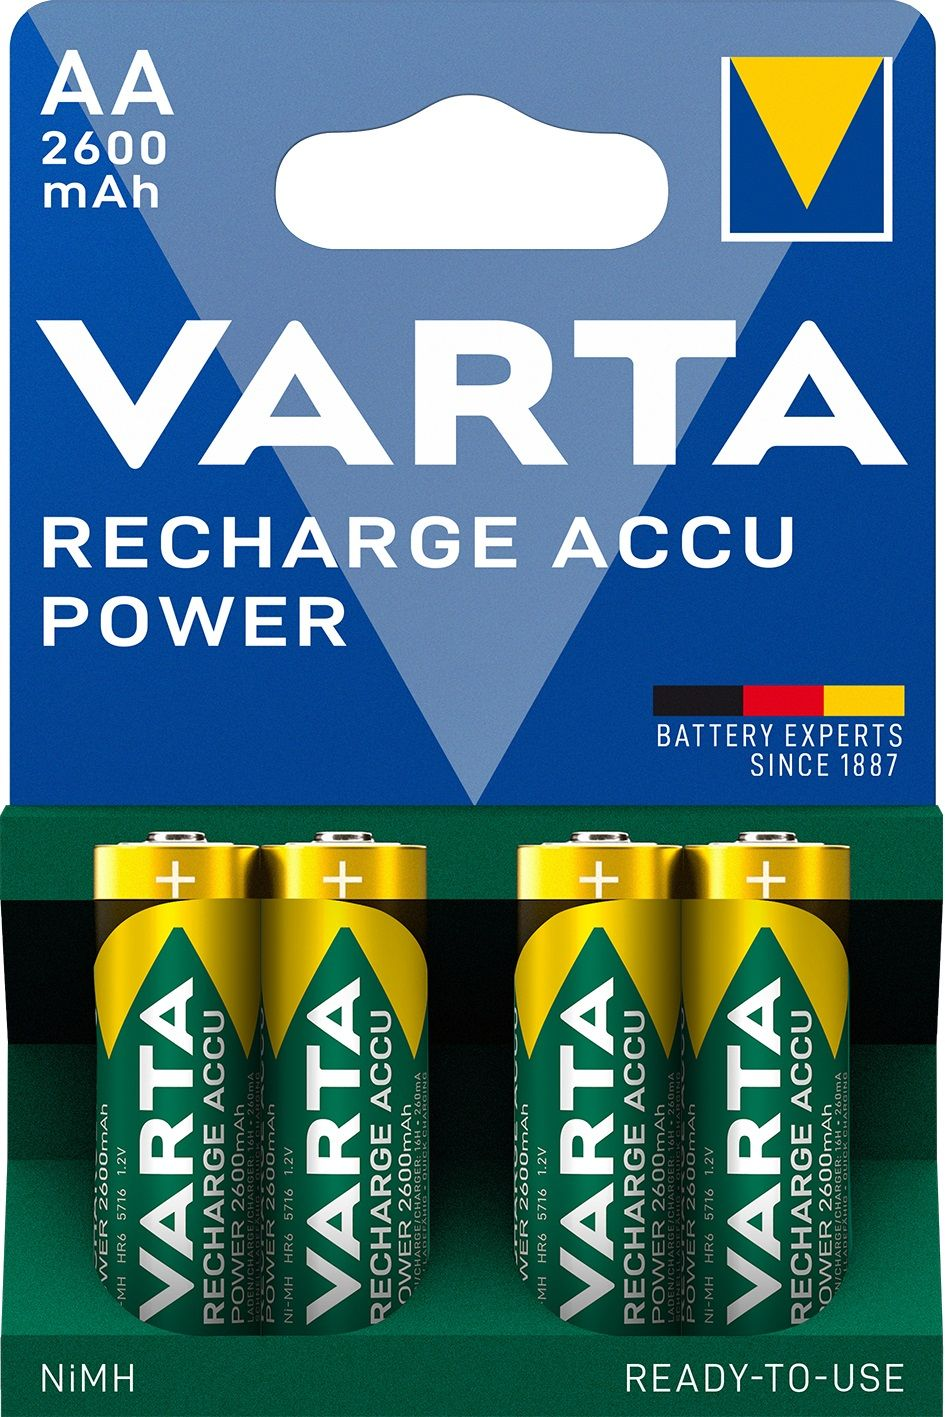 Varta Recharge Accu Power AA 2600 mAh (4 pz)